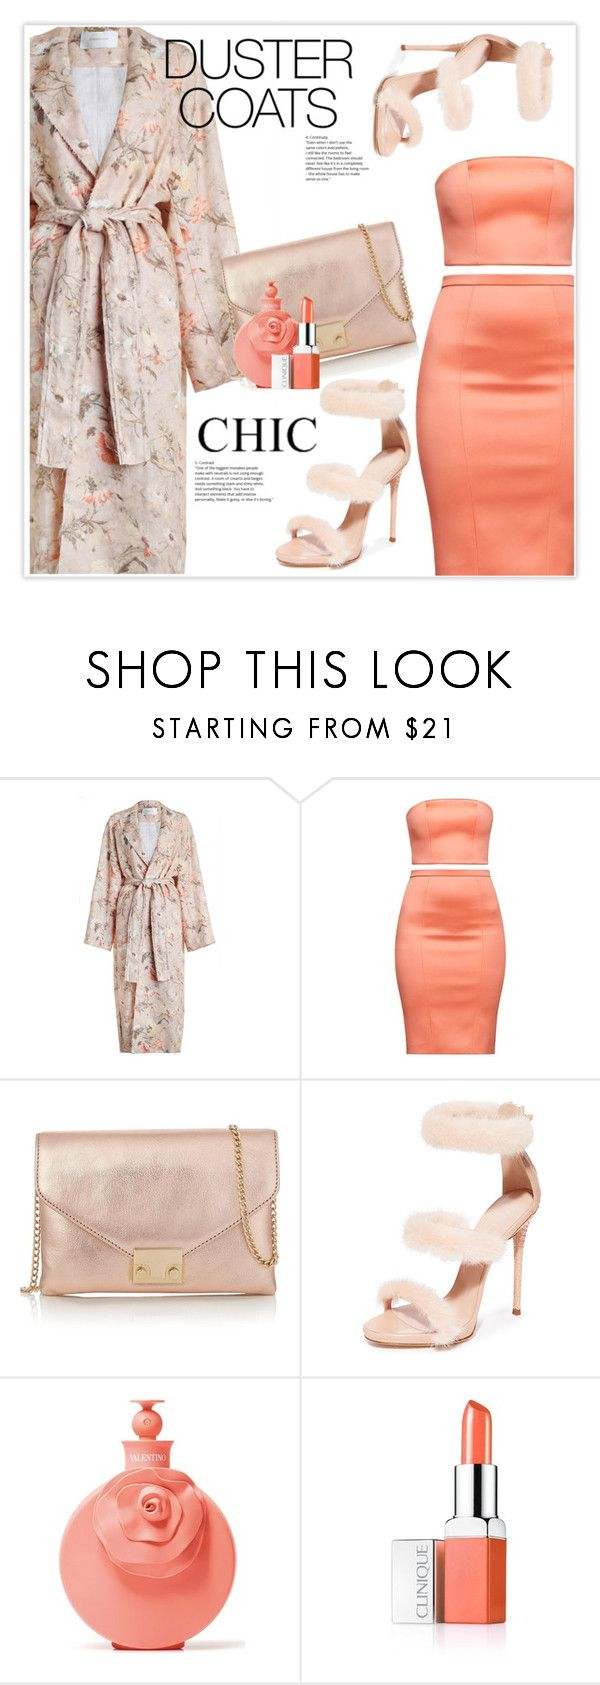 """""""Long Layers: Duster Coats"""" by stranjakivana ❤ liked on Polyvore featuring Zimmermann, Loeffler Randall, Giuseppe Zanotti, Valentino, Clinique, polyvoreeditorial, whitesneakers and DusterCoats"""